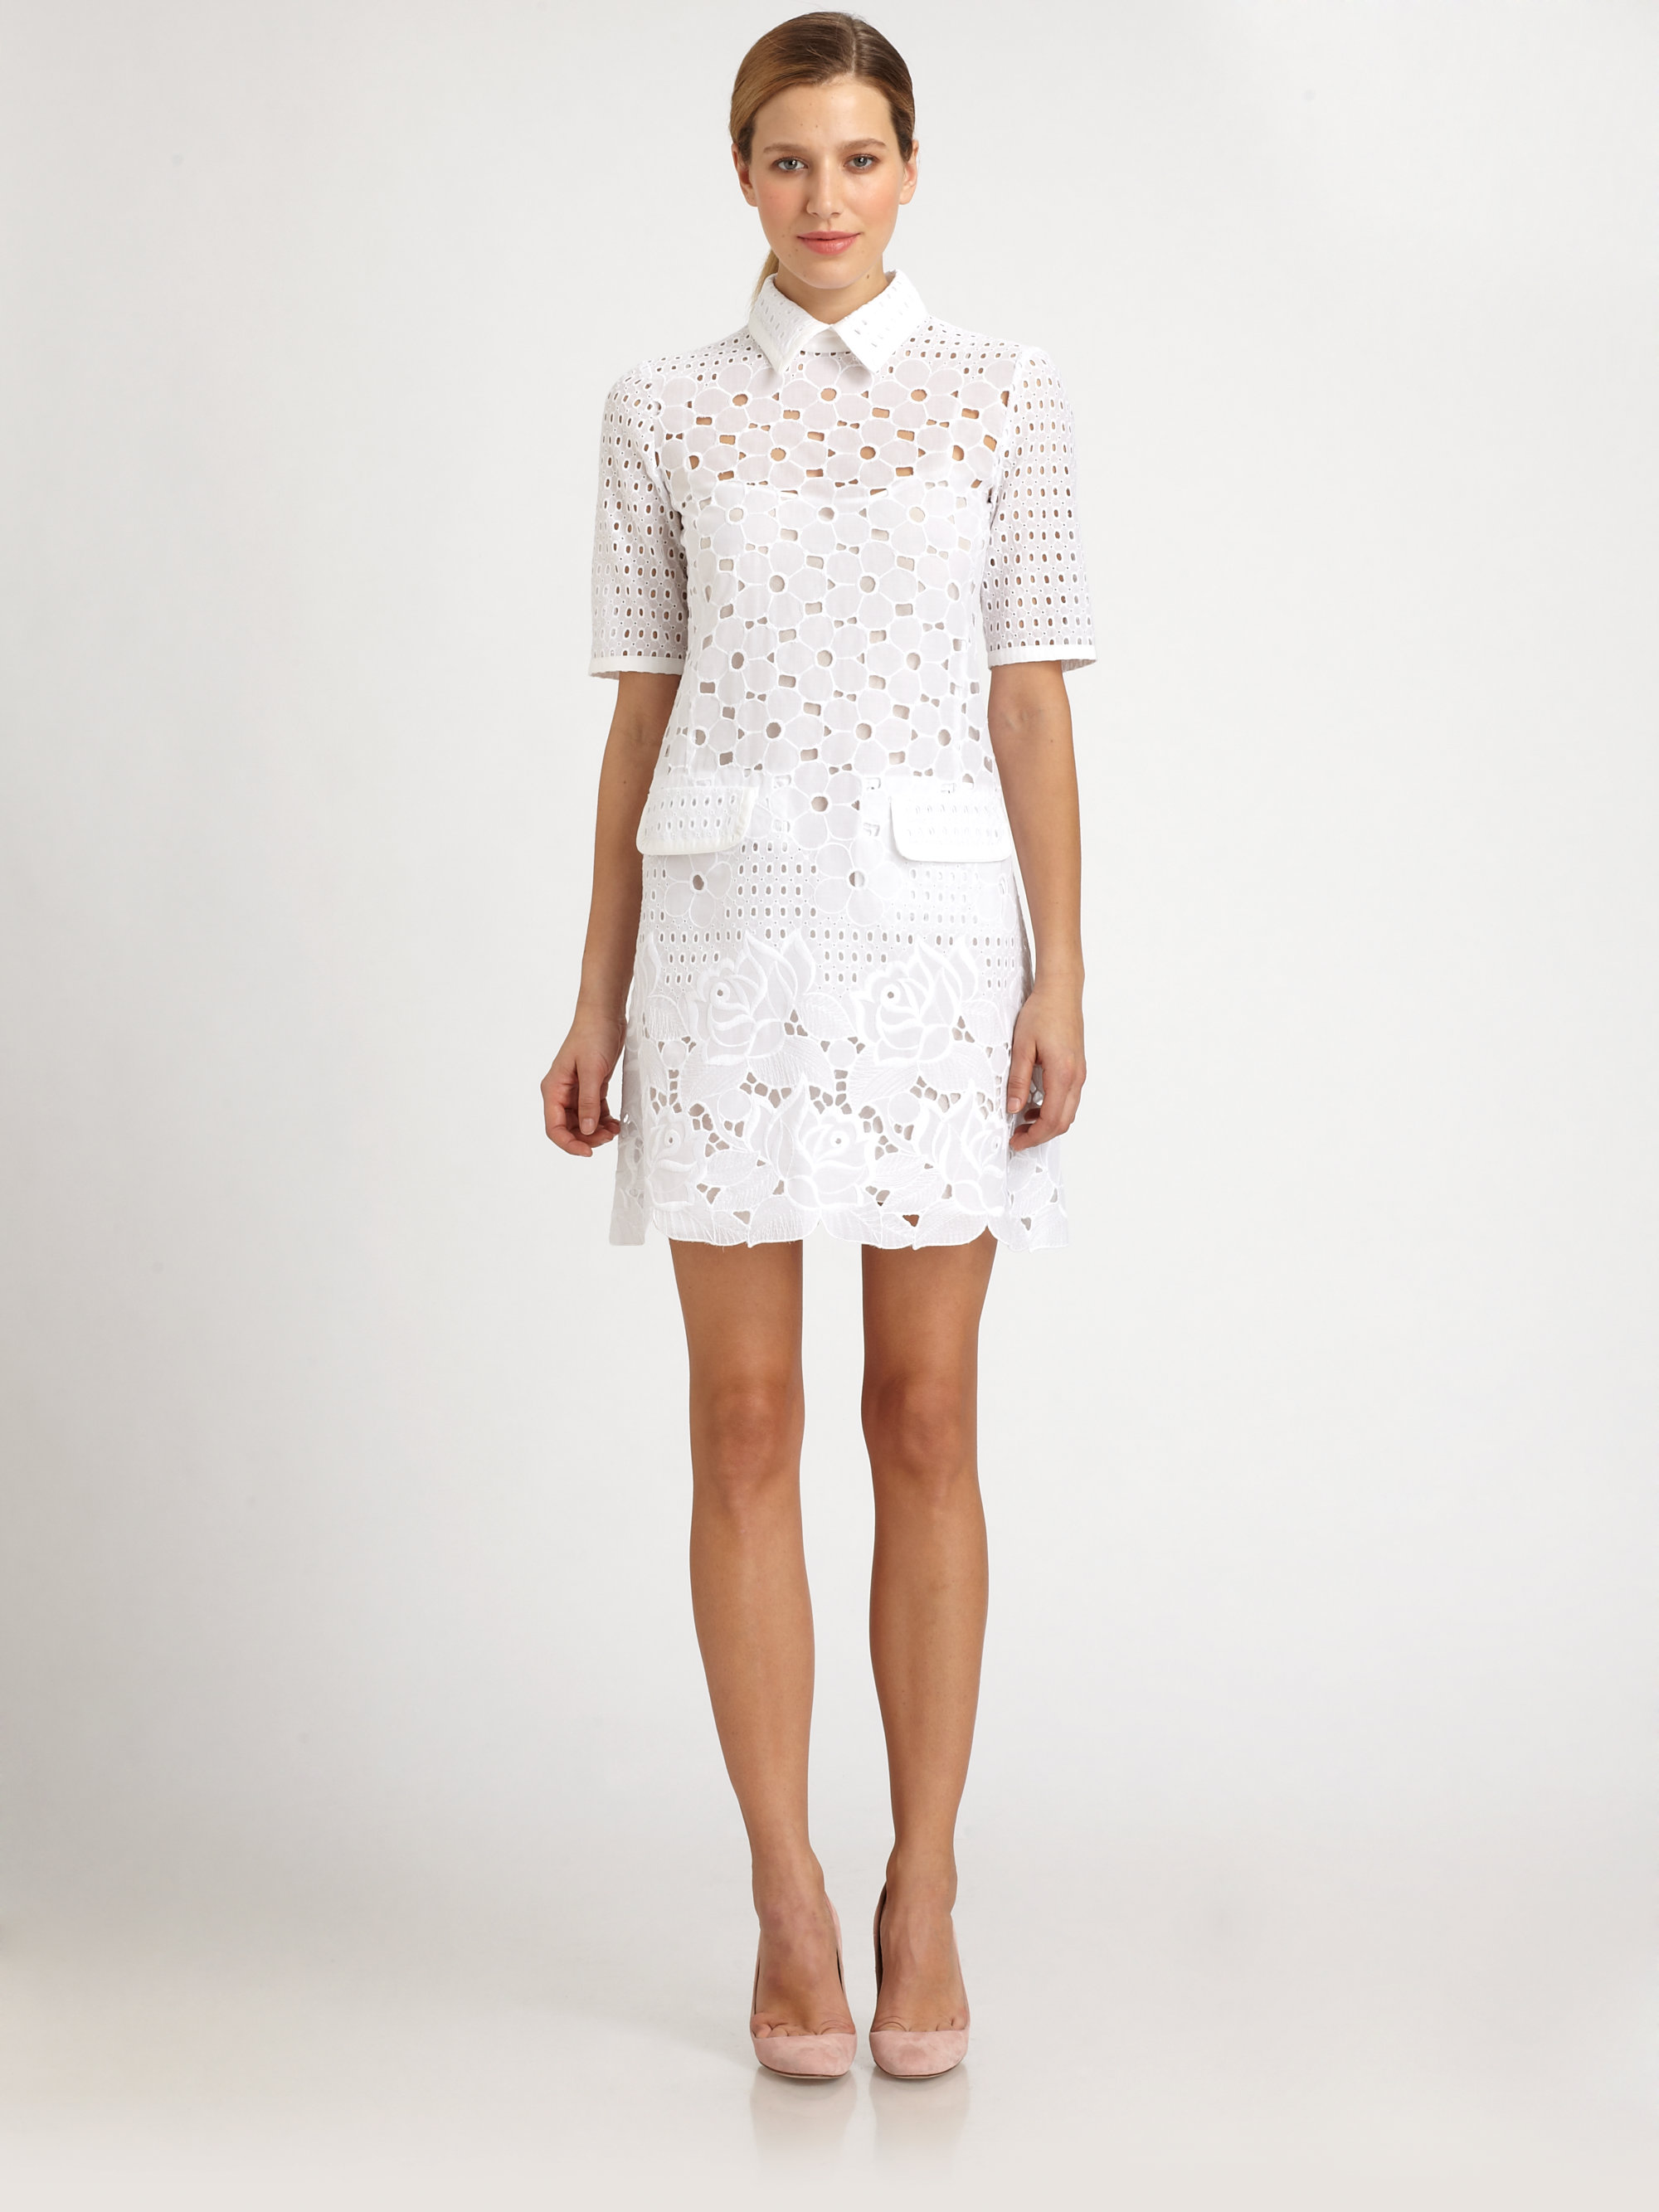 Lyst Moschino Collared Eyelet Lace Dress In White